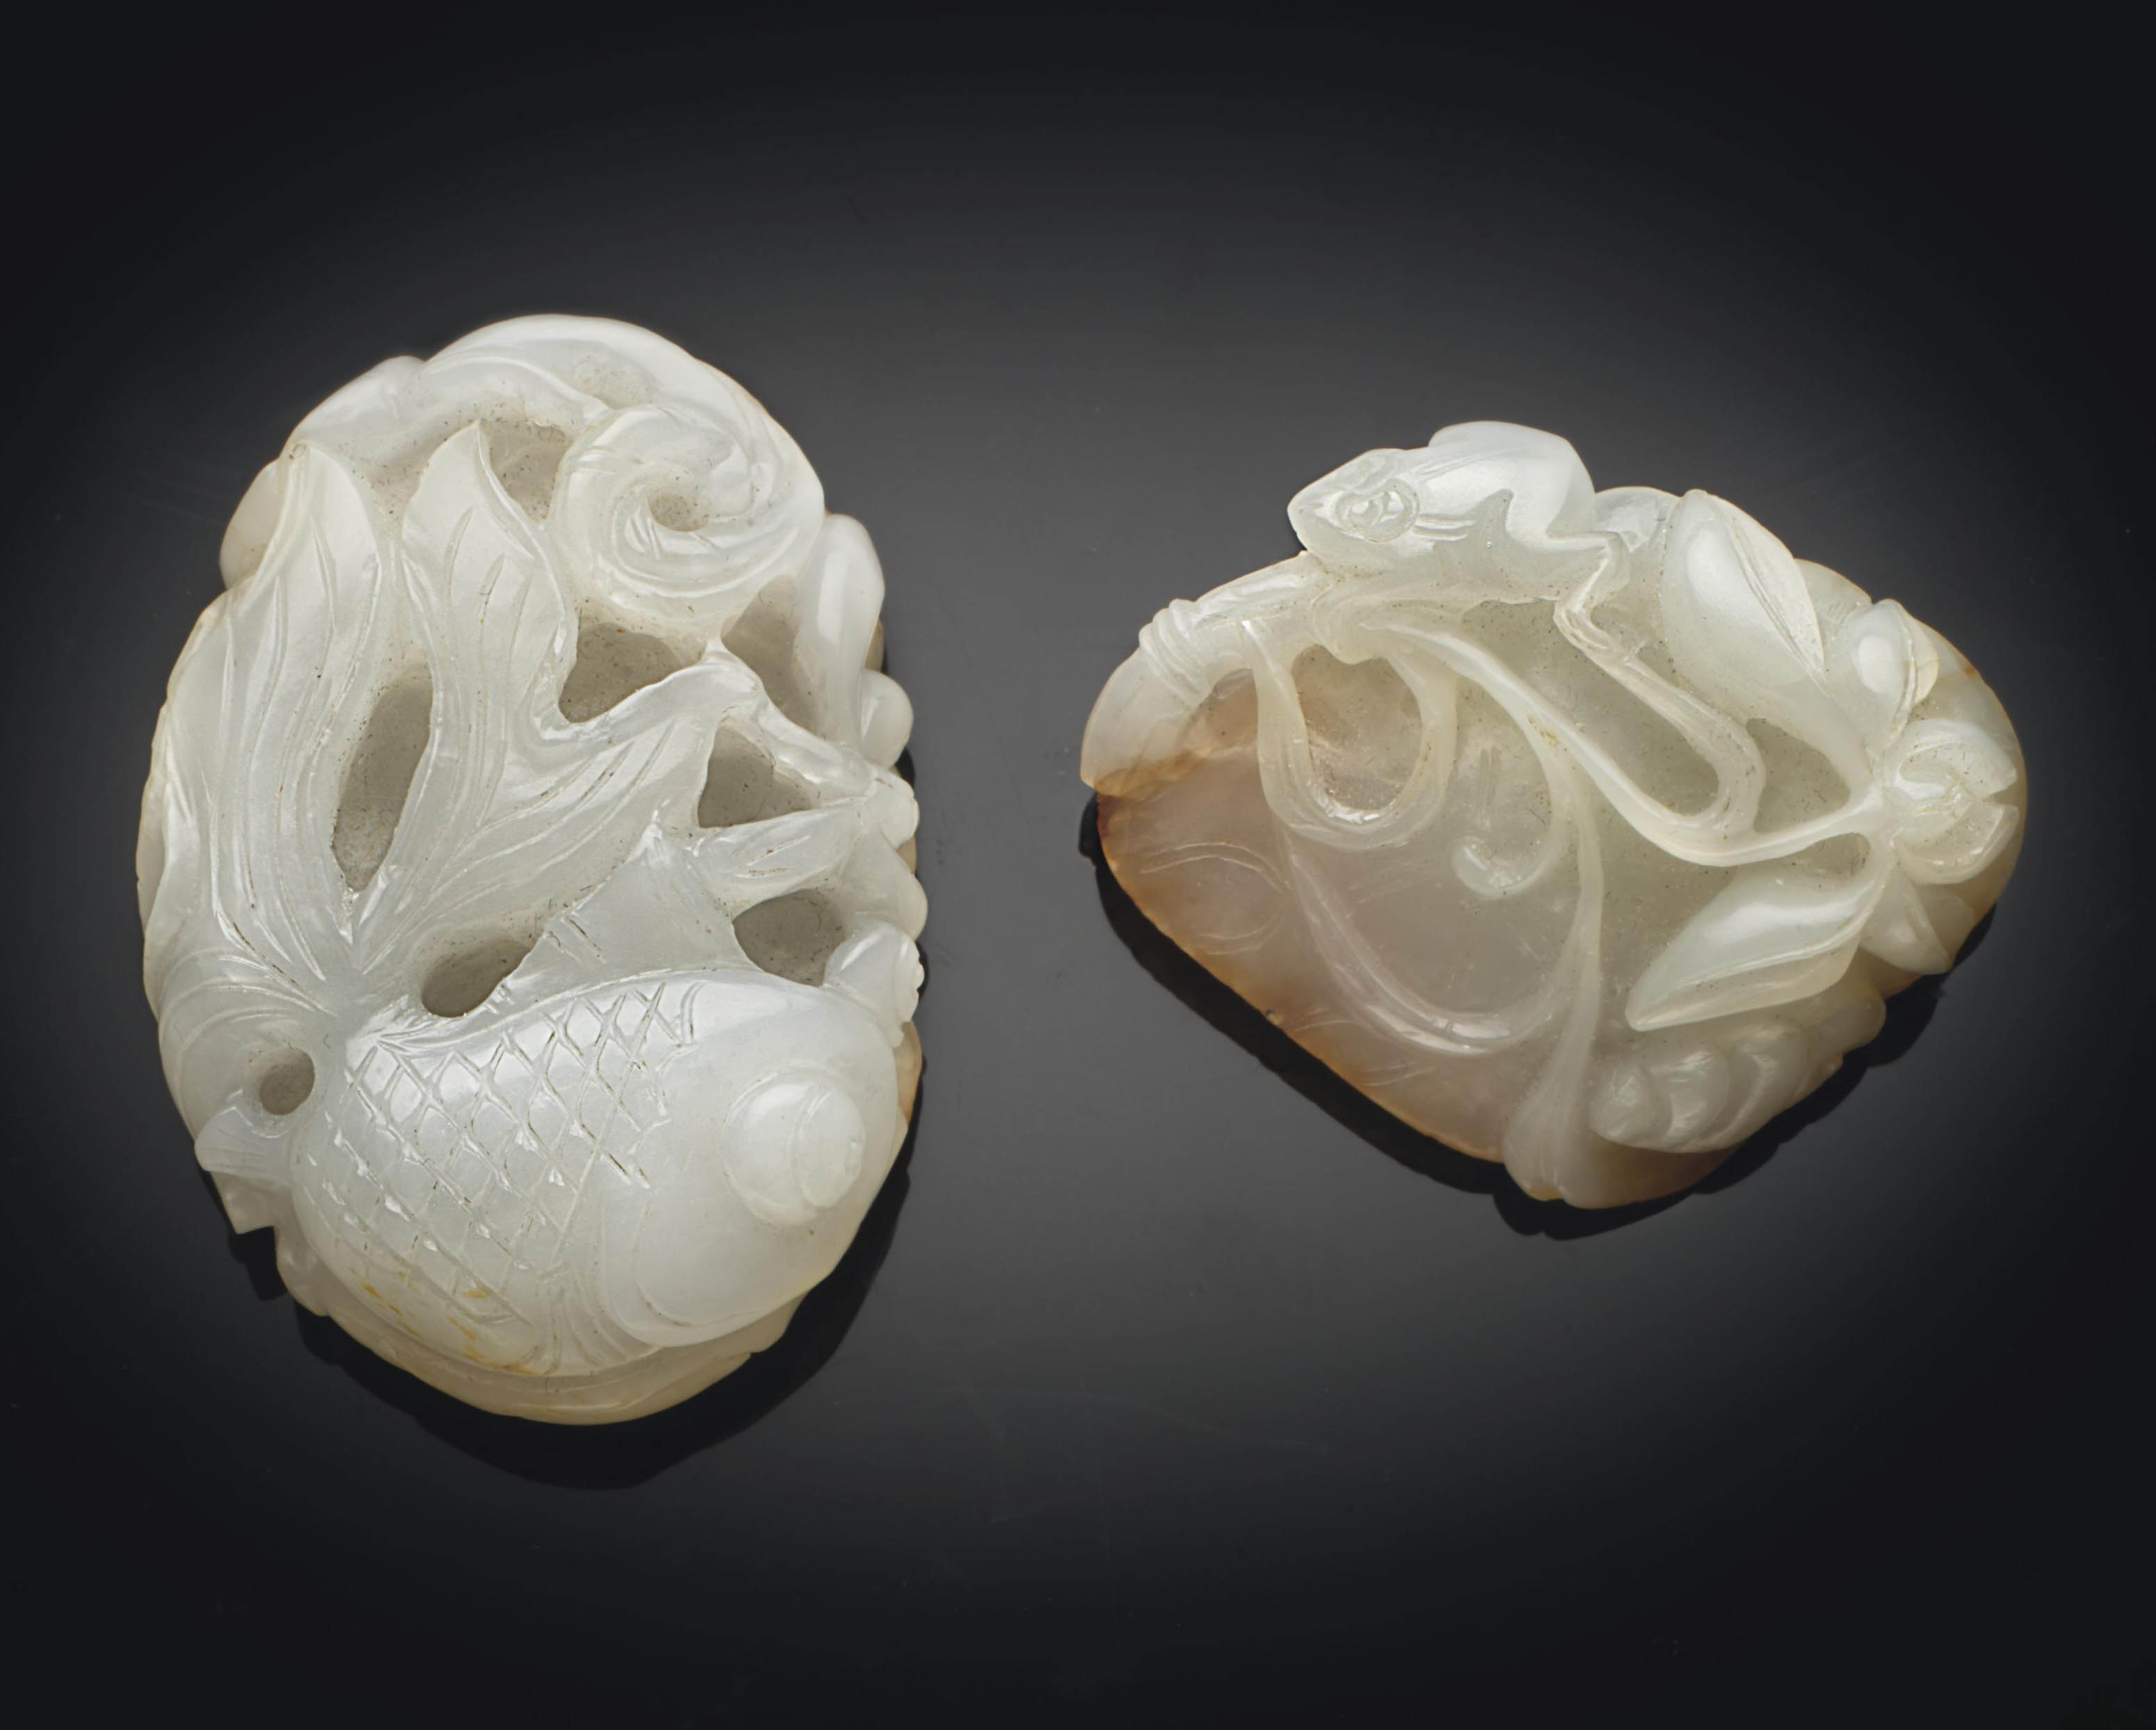 A WHITE JADE PENDANT AND A WHI